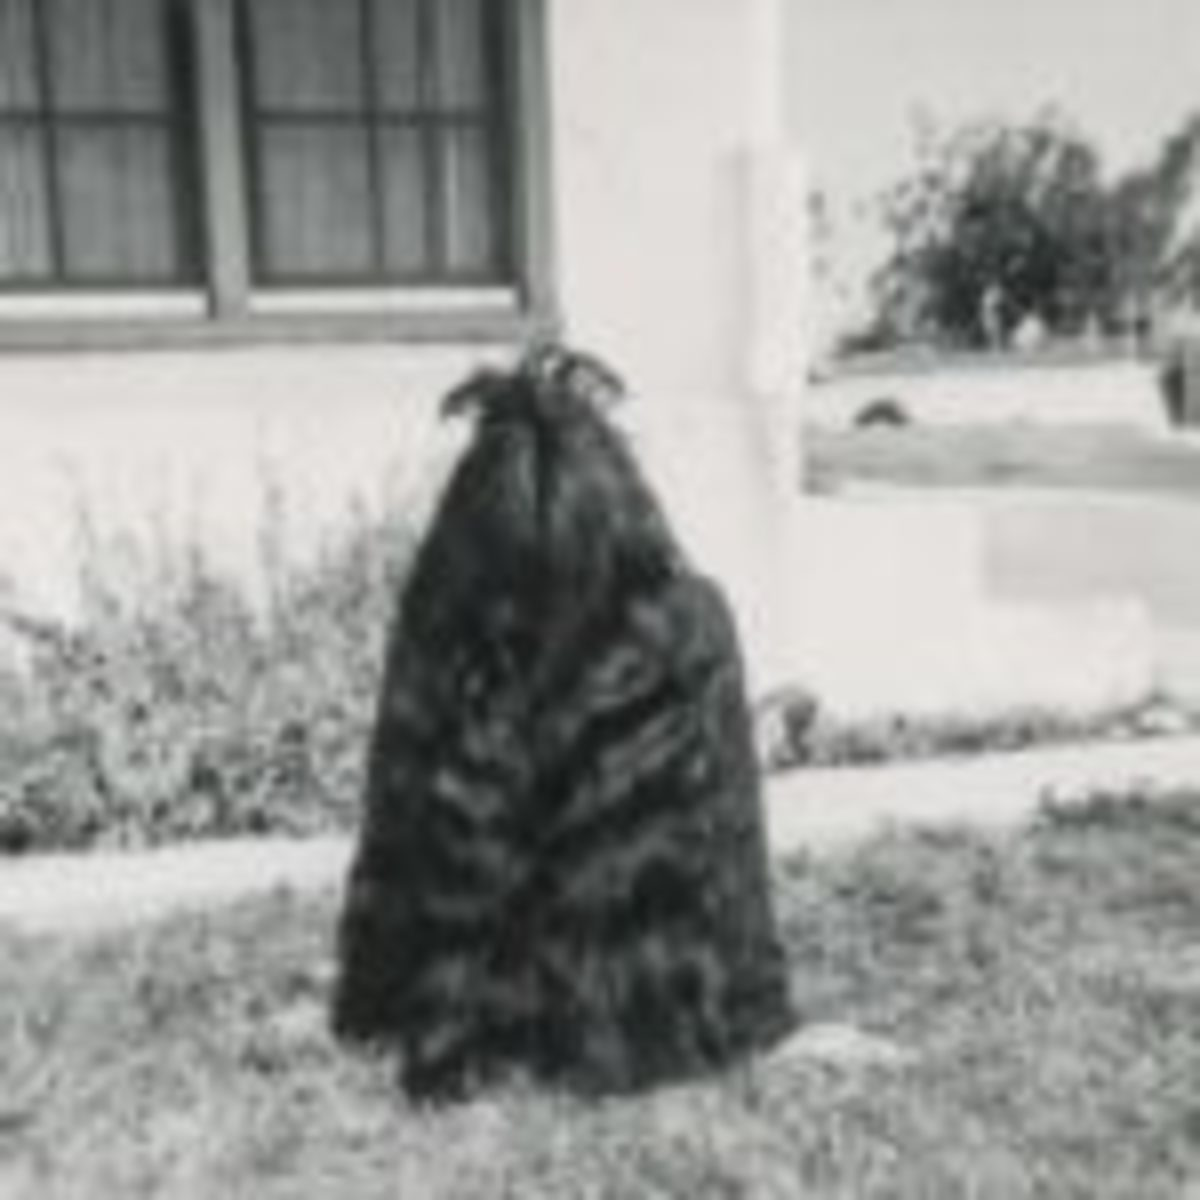 One of many oddities in the Peter J Cohen collection, here we see a thick mane of hair, only the edge of a foot revealing the figure that is masked.